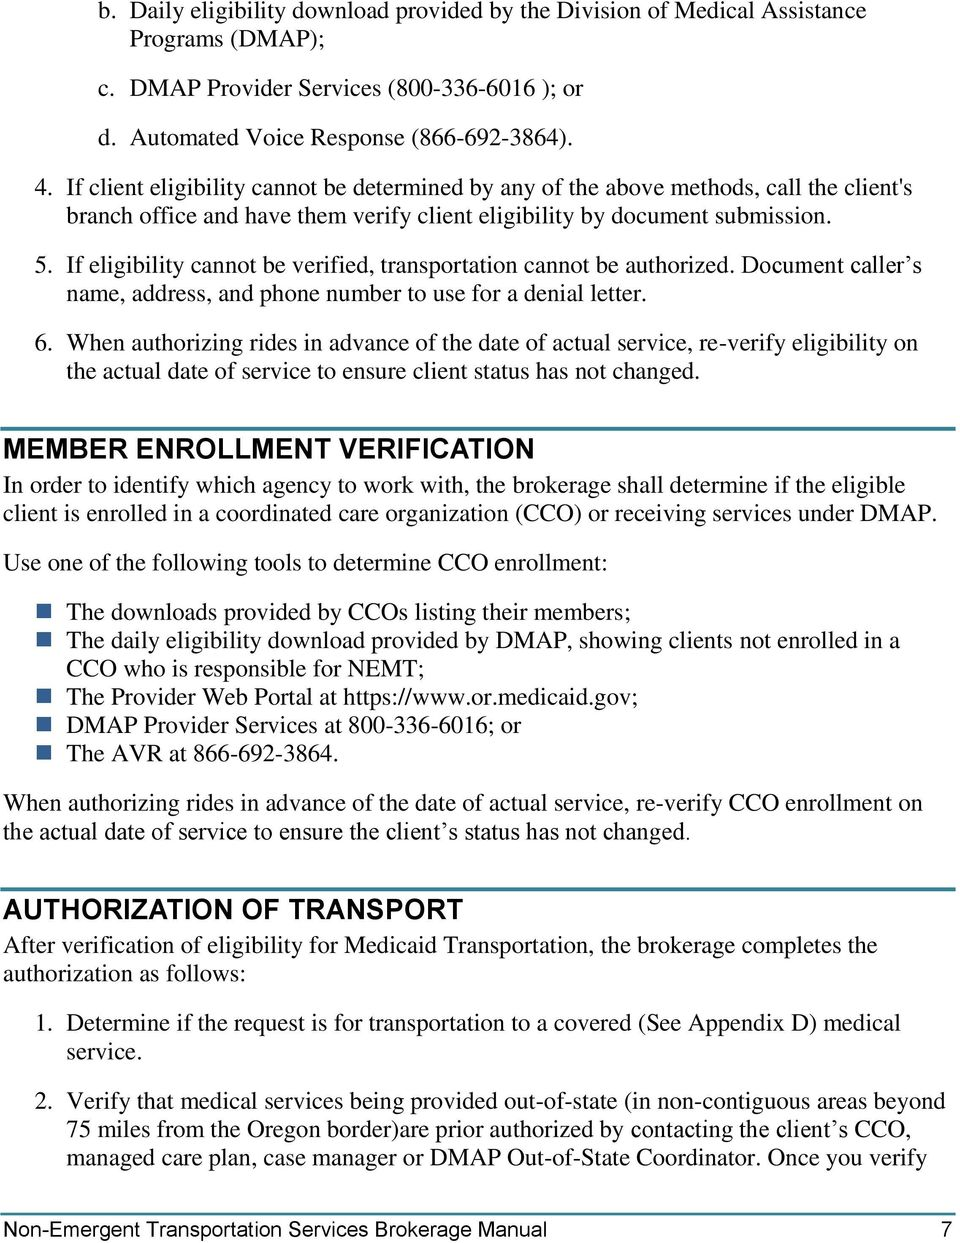 If eligibility cannot be verified, transportation cannot be authorized. Document caller s name, address, and phone number to use for a denial letter. 6.